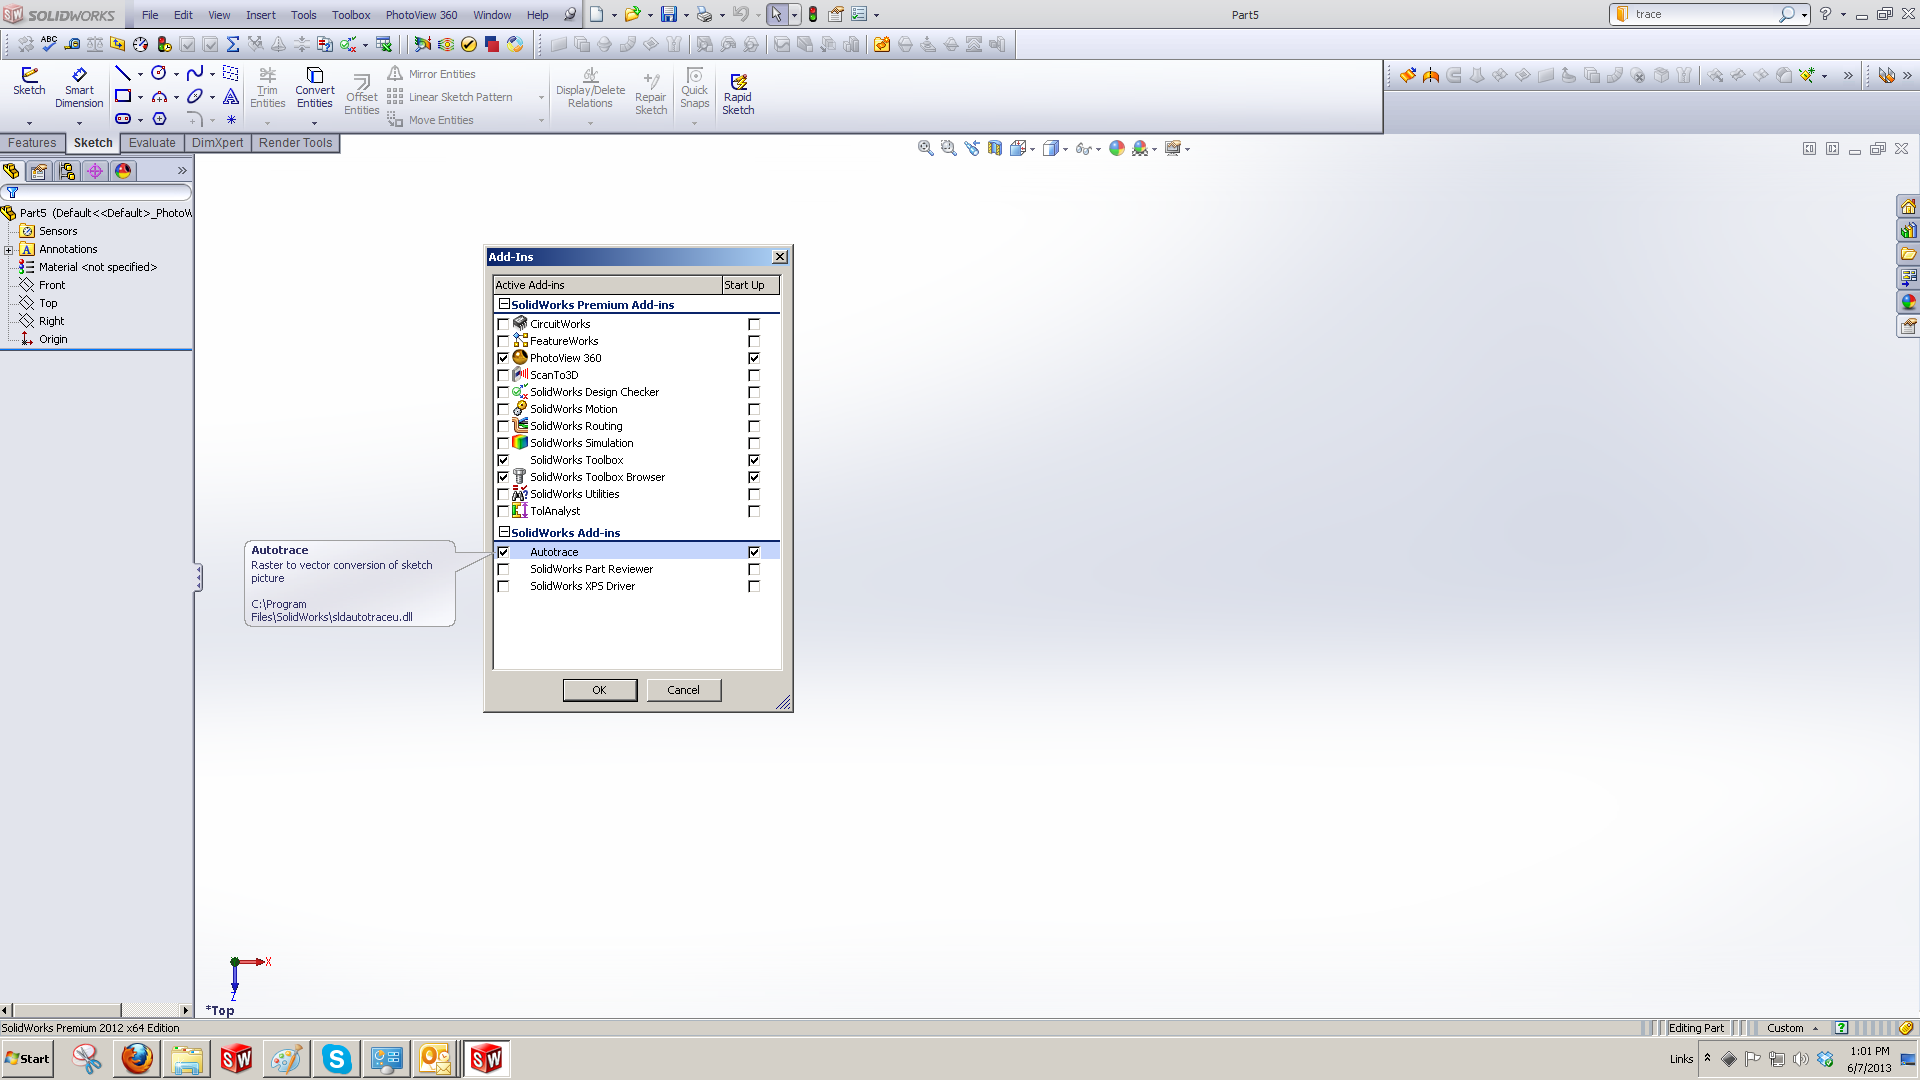 solidworks autotrace add in